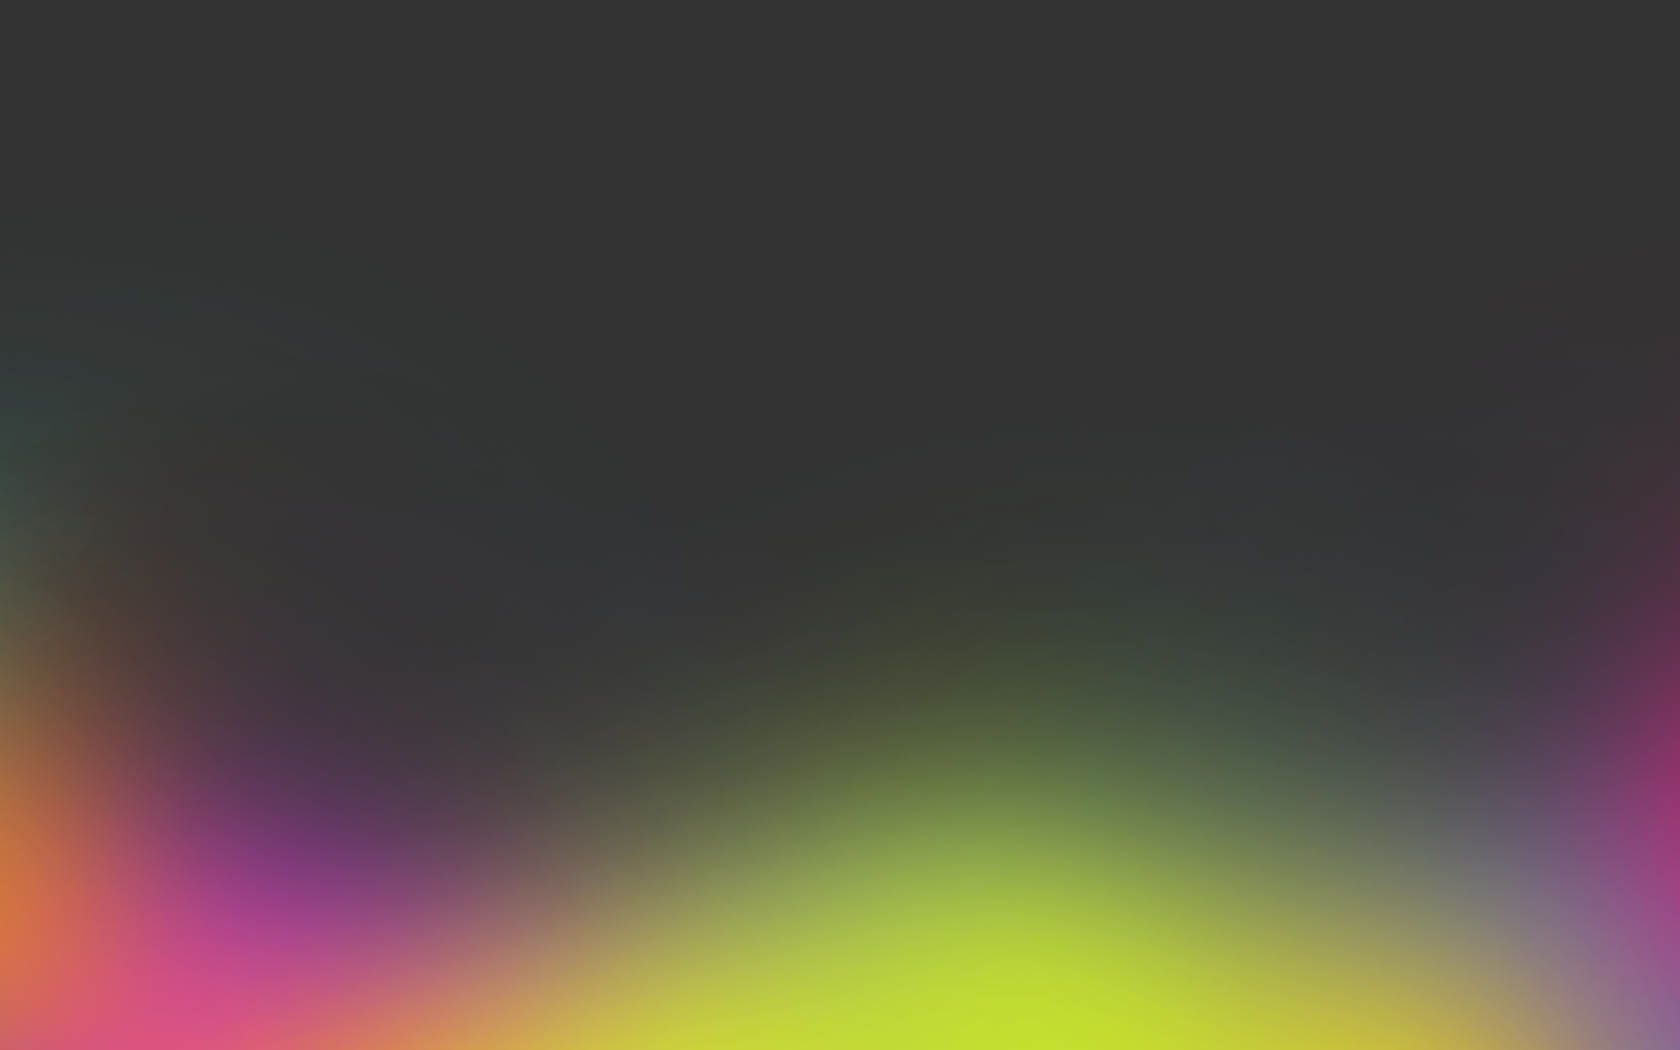 Black And Yellow Wallpaper Jquery I Want To Add Fading Color Blobs Png Is Too